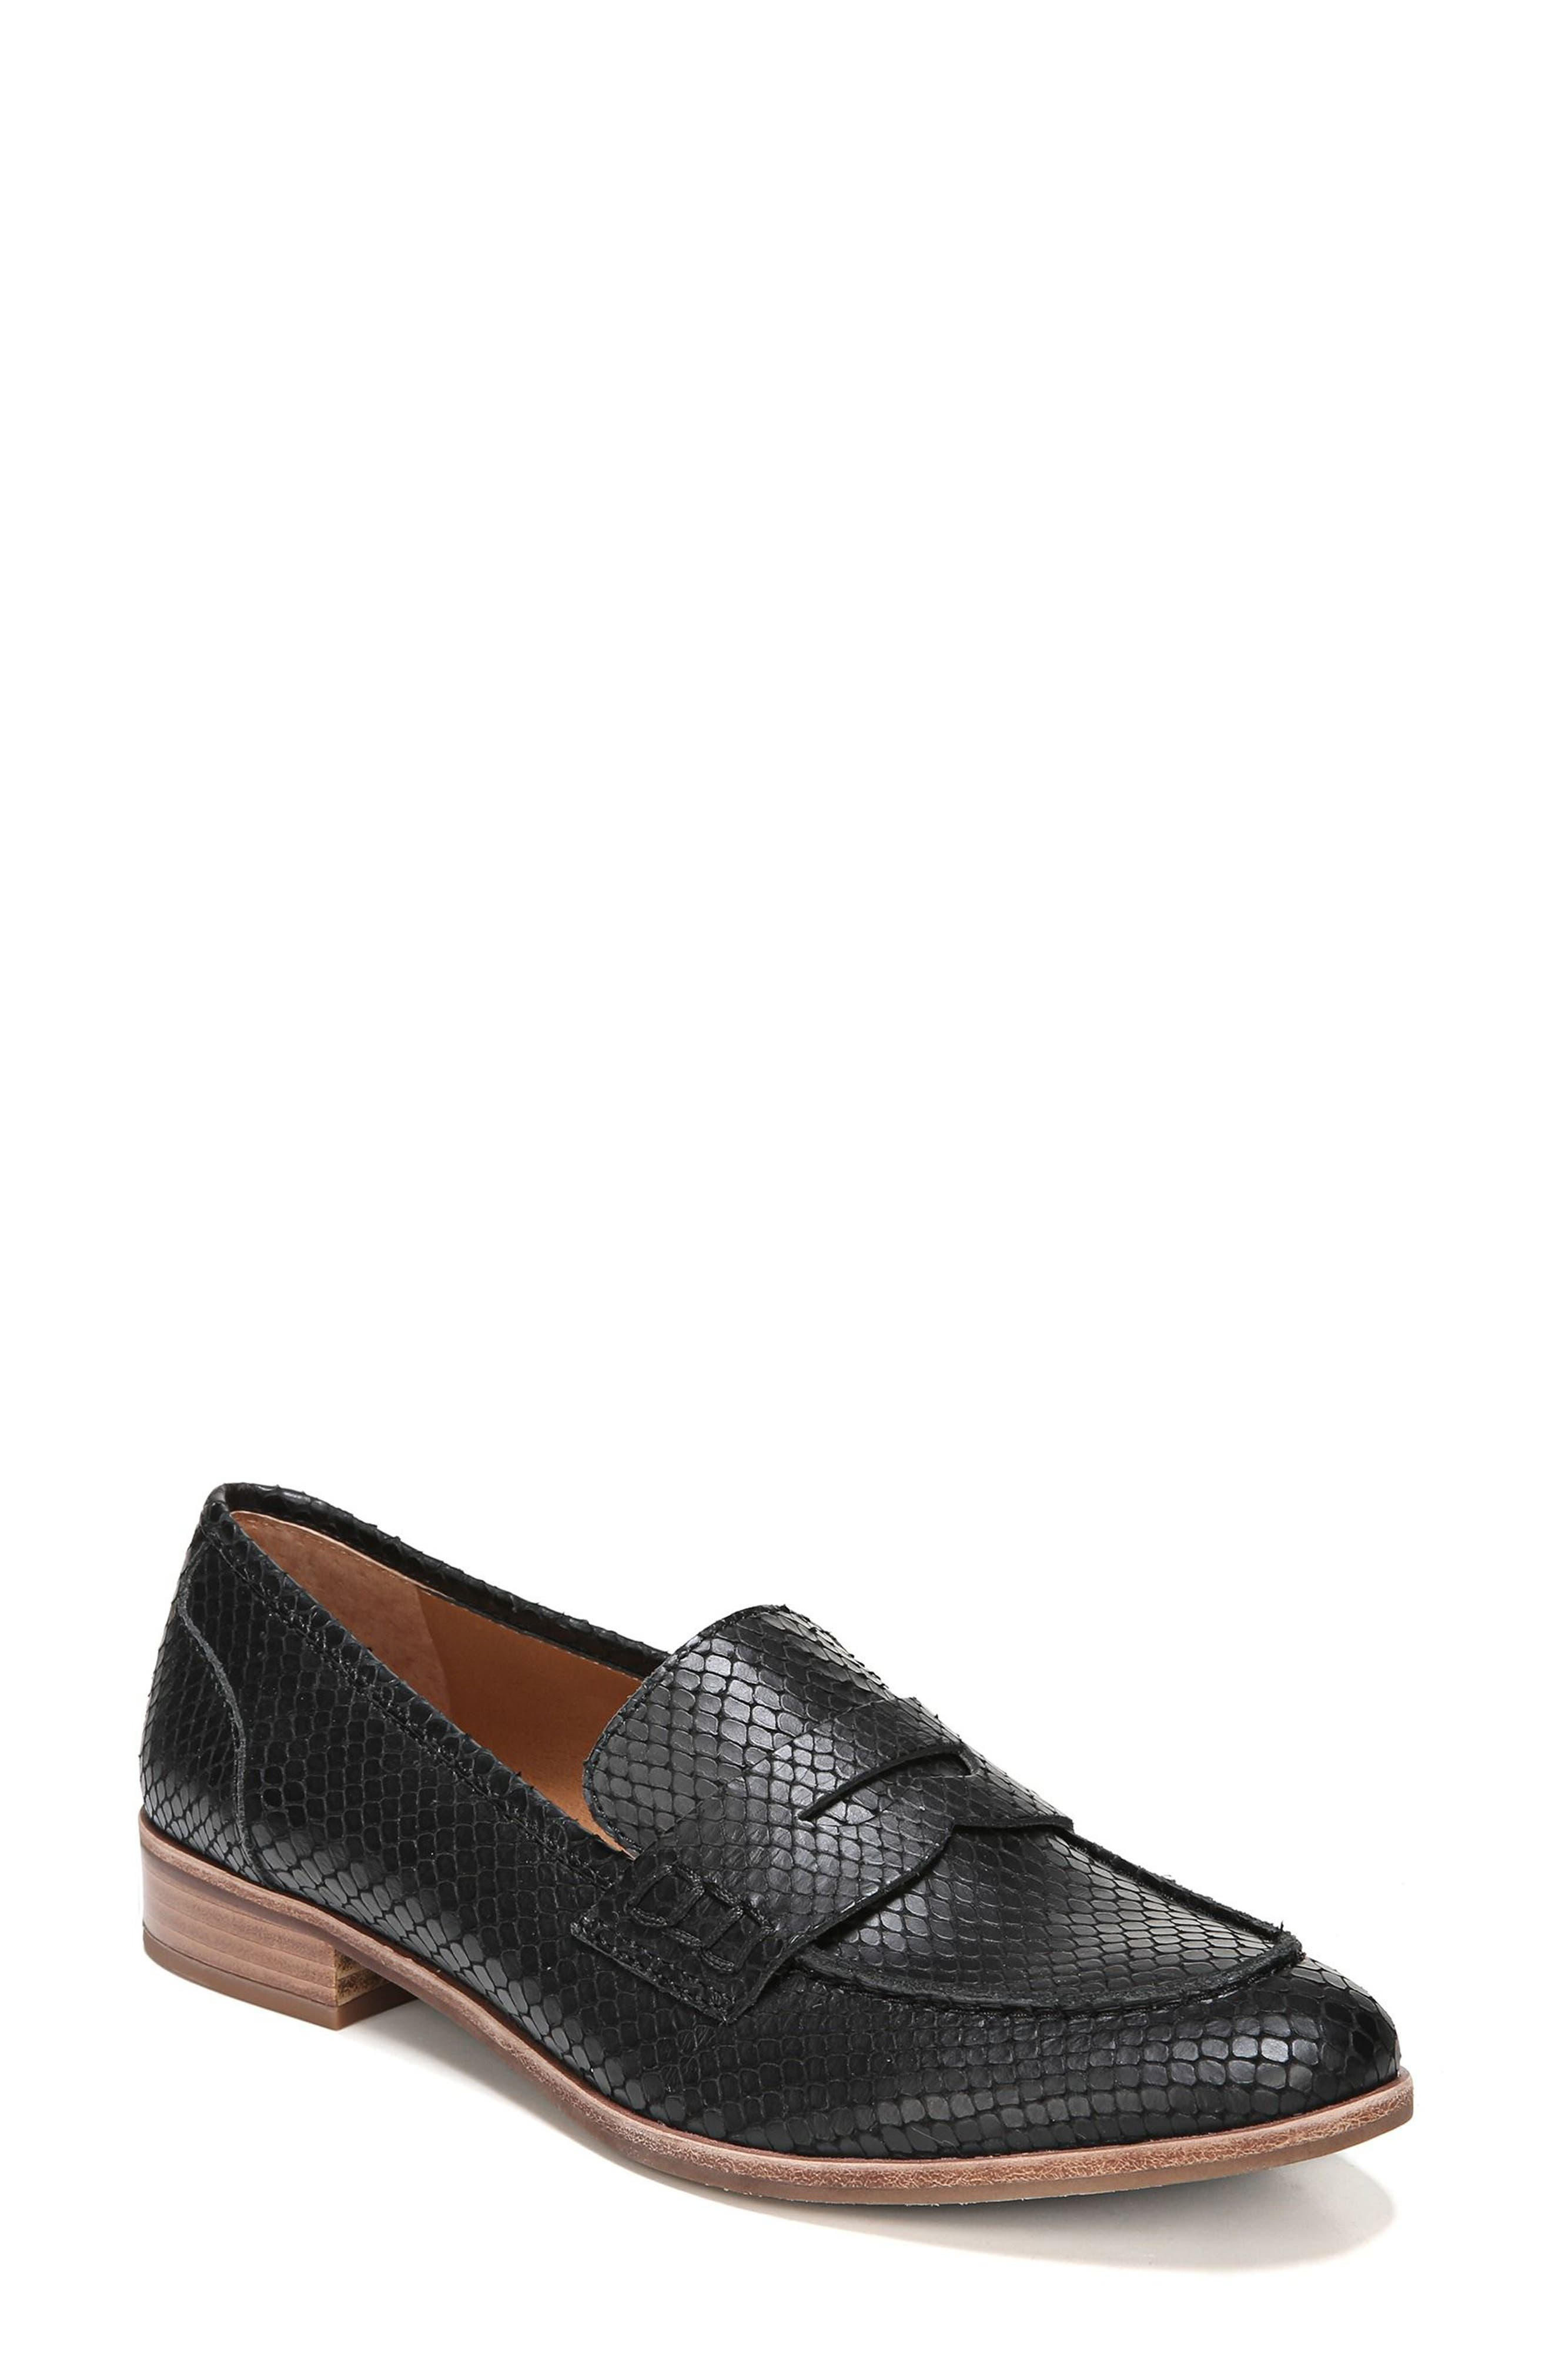 'Jolette' Penny Loafer,                             Main thumbnail 1, color,                             Black Printed Leather